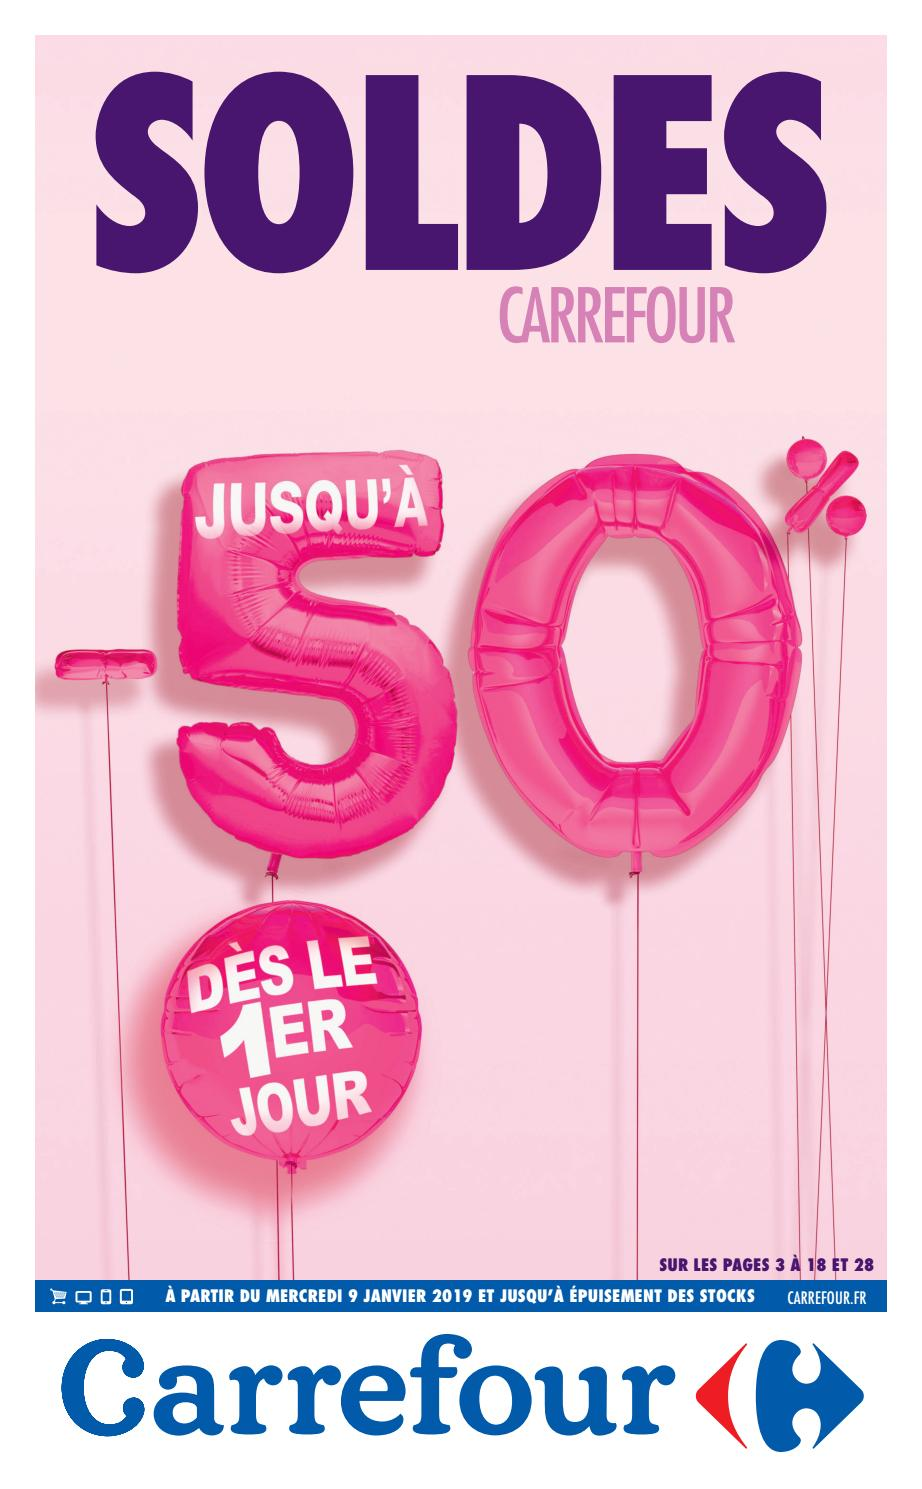 Httpcalendrier Carrefourdrivecom.Catalogue Des Soldes 2019 Carrefour By Bonsplans Issuu